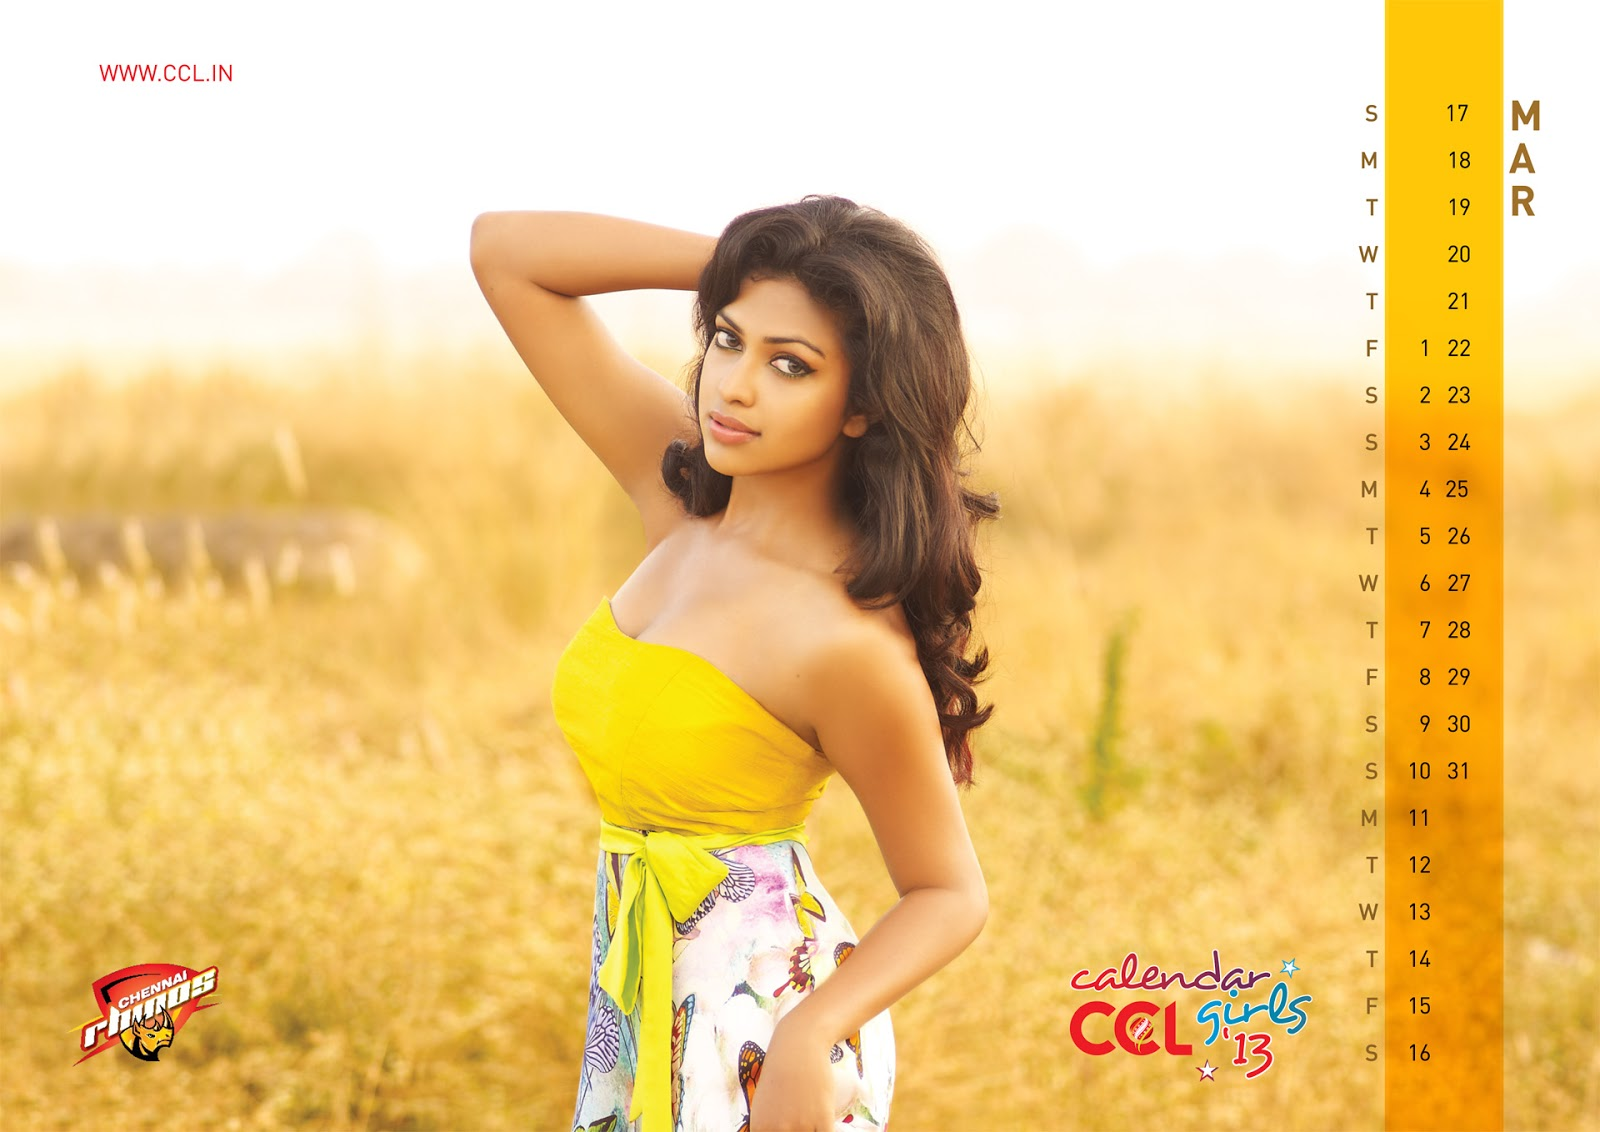 Download CCL Calendar 2013 Wallpapers - Telugu Movie Images